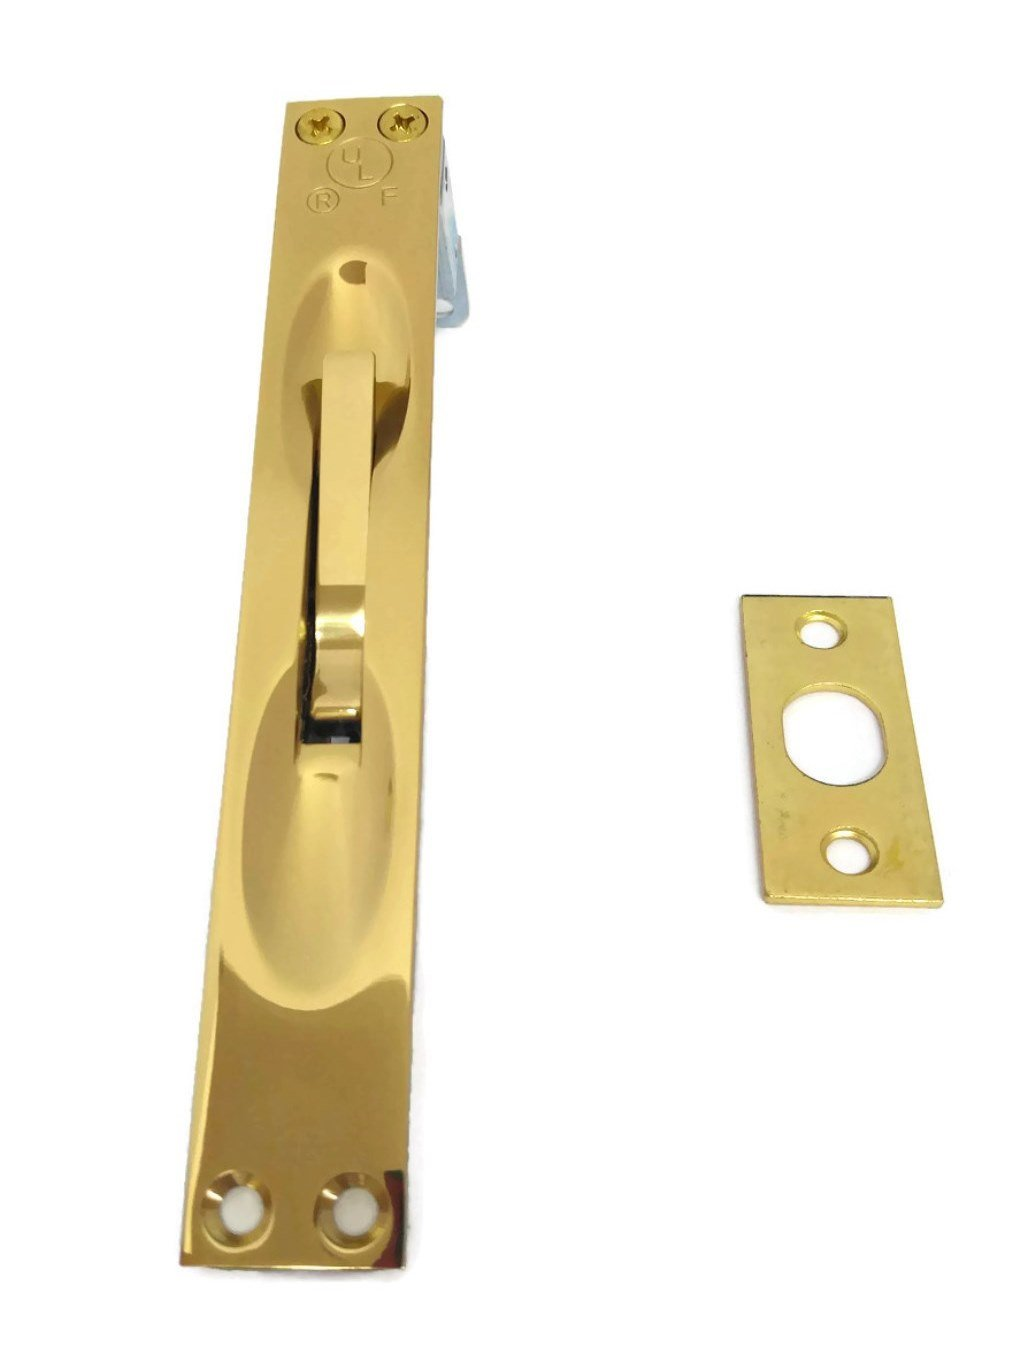 Rockwood 557 US3 Manual Flush Bolt, for wood doors corner mounted 6 3/4 x 1, UL Approved for Wood Doors up to 90 Min